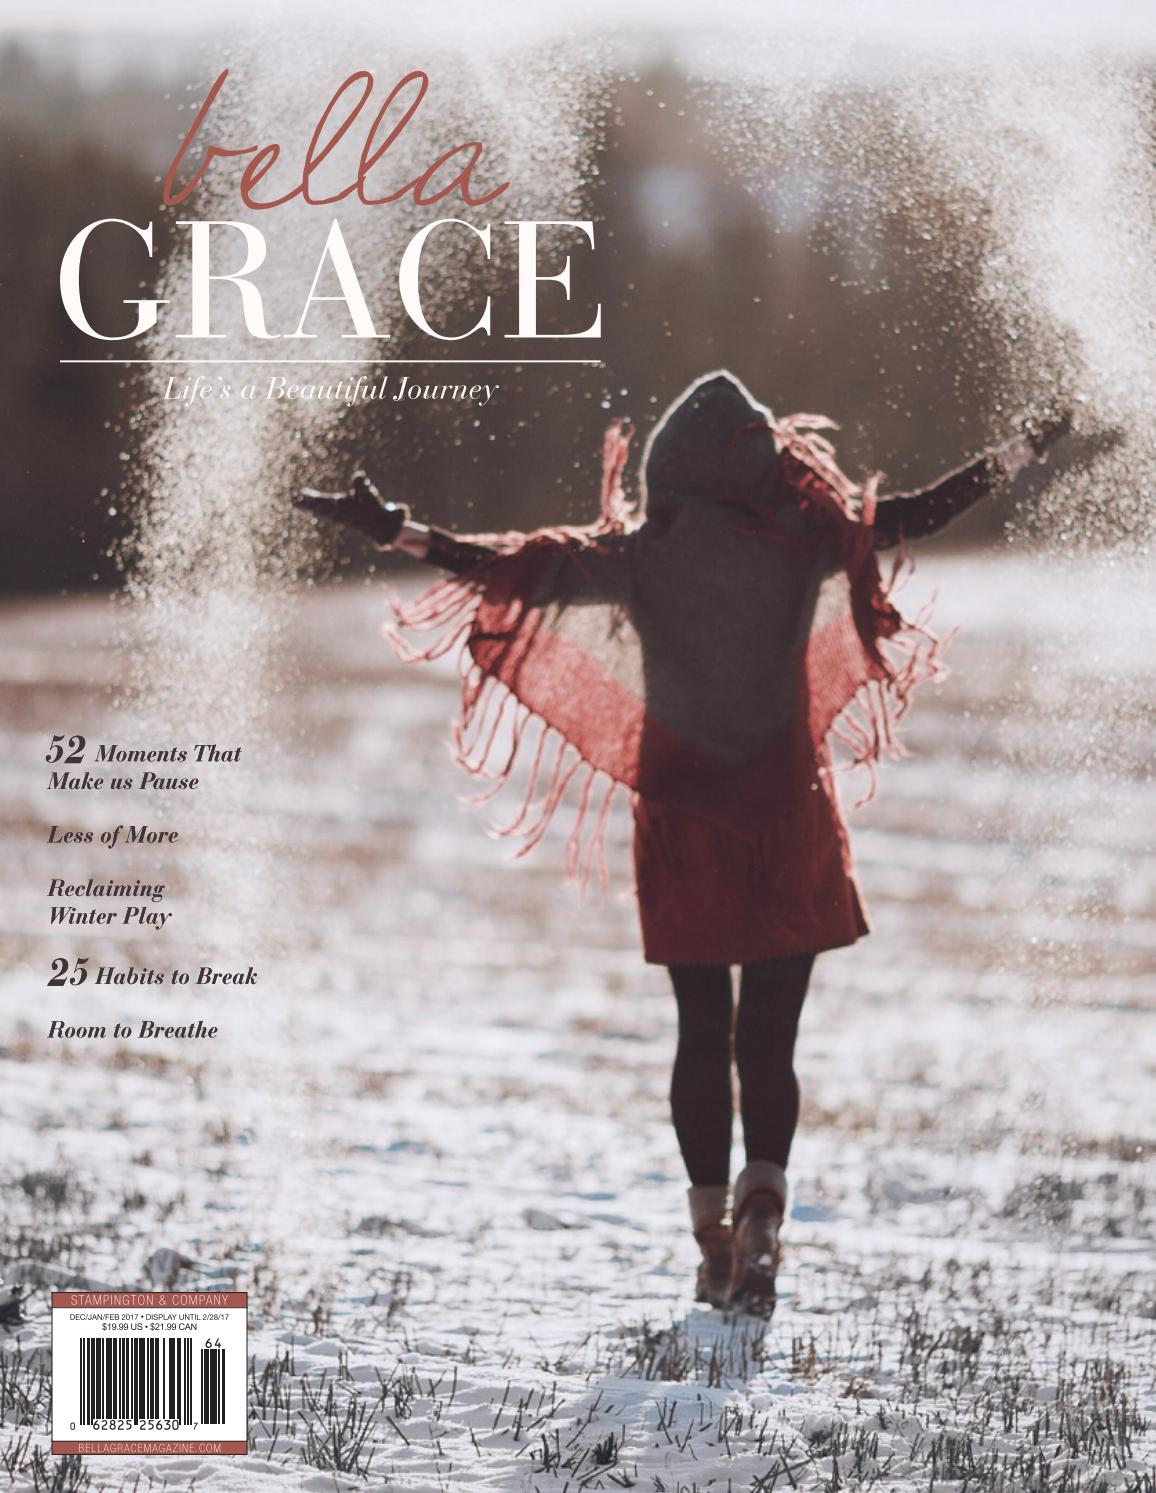 cb64d7c5ae7b Bella Grace Issue 10 by Stampington   Company - issuu